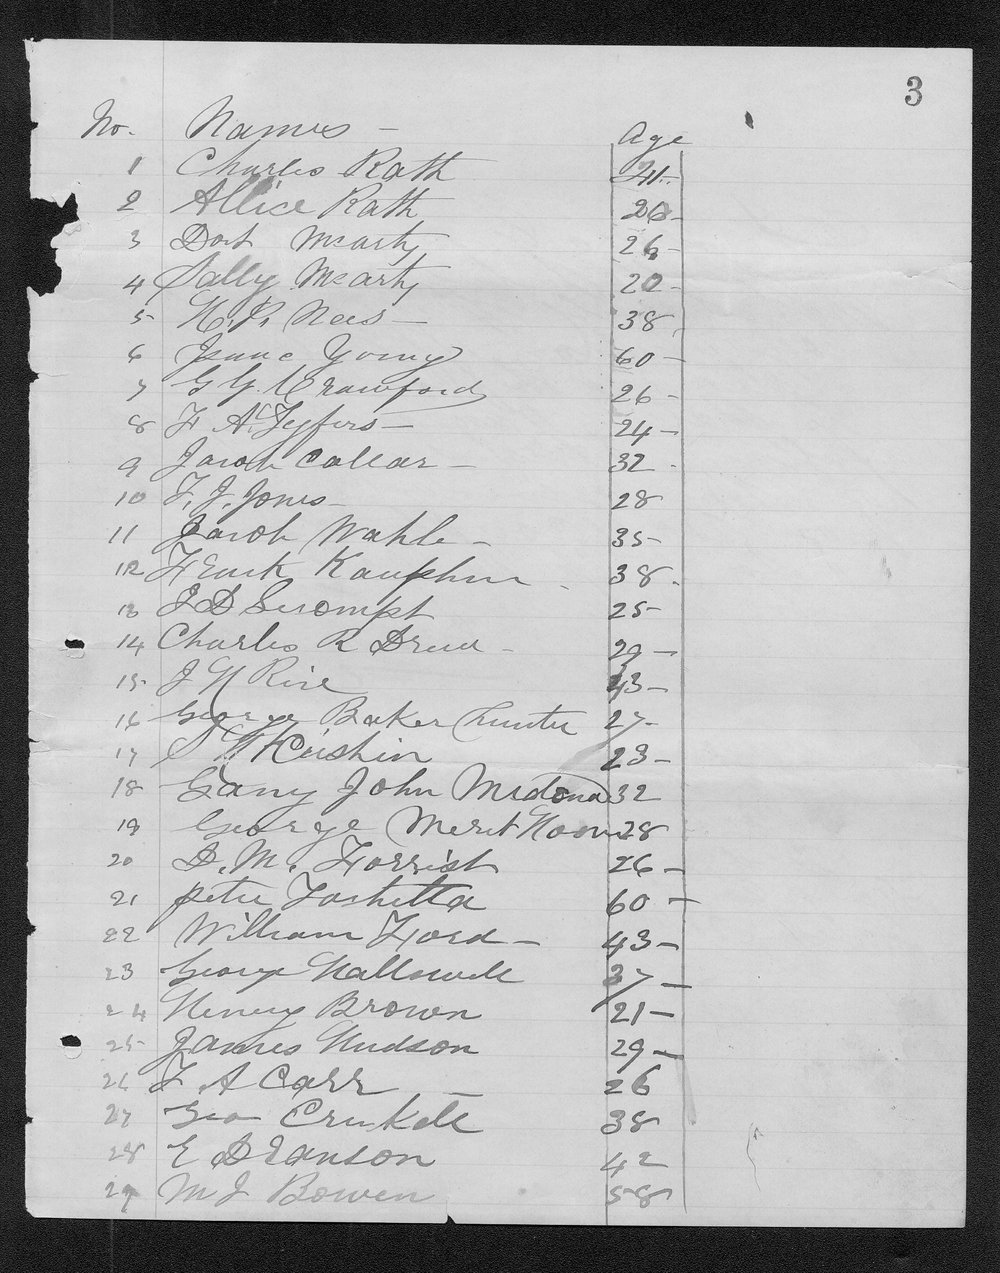 Ford County organization records - 7